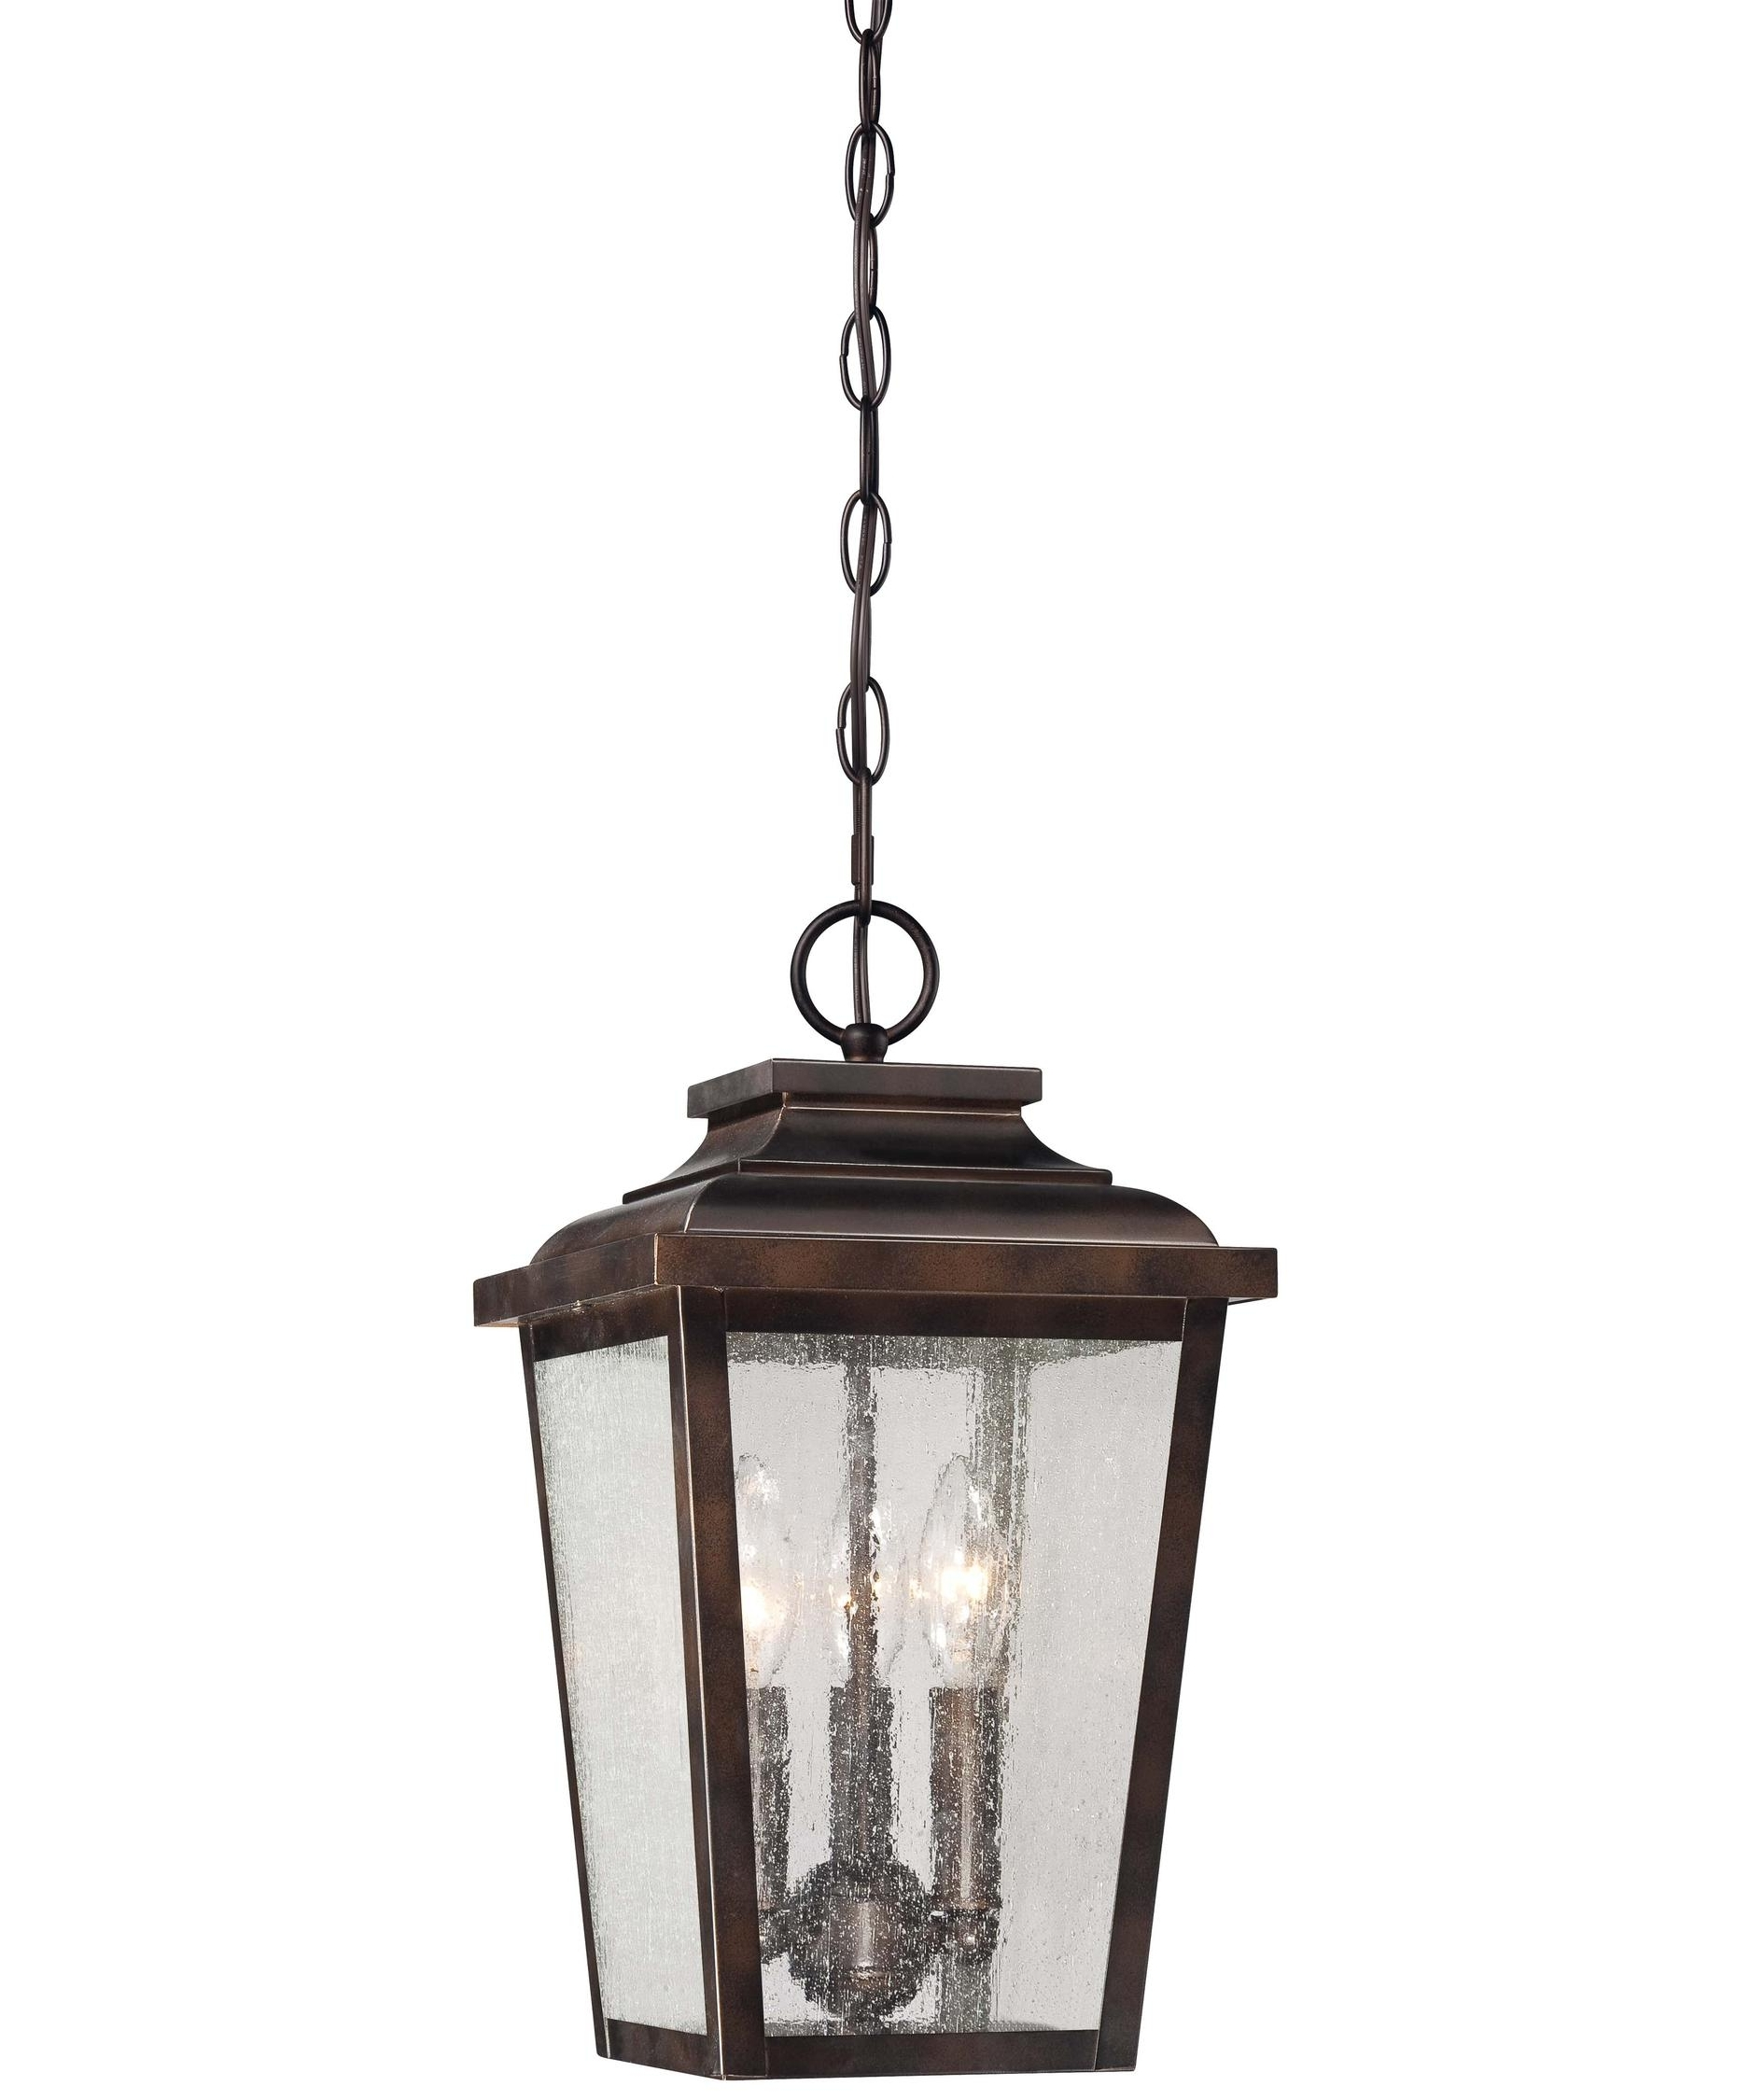 Outdoor Hanging Lighting Fixtures In Well Known Minka Lavery 72174 Irvington Manor 9 Inch Wide 3 Light Outdoor (View 2 of 20)